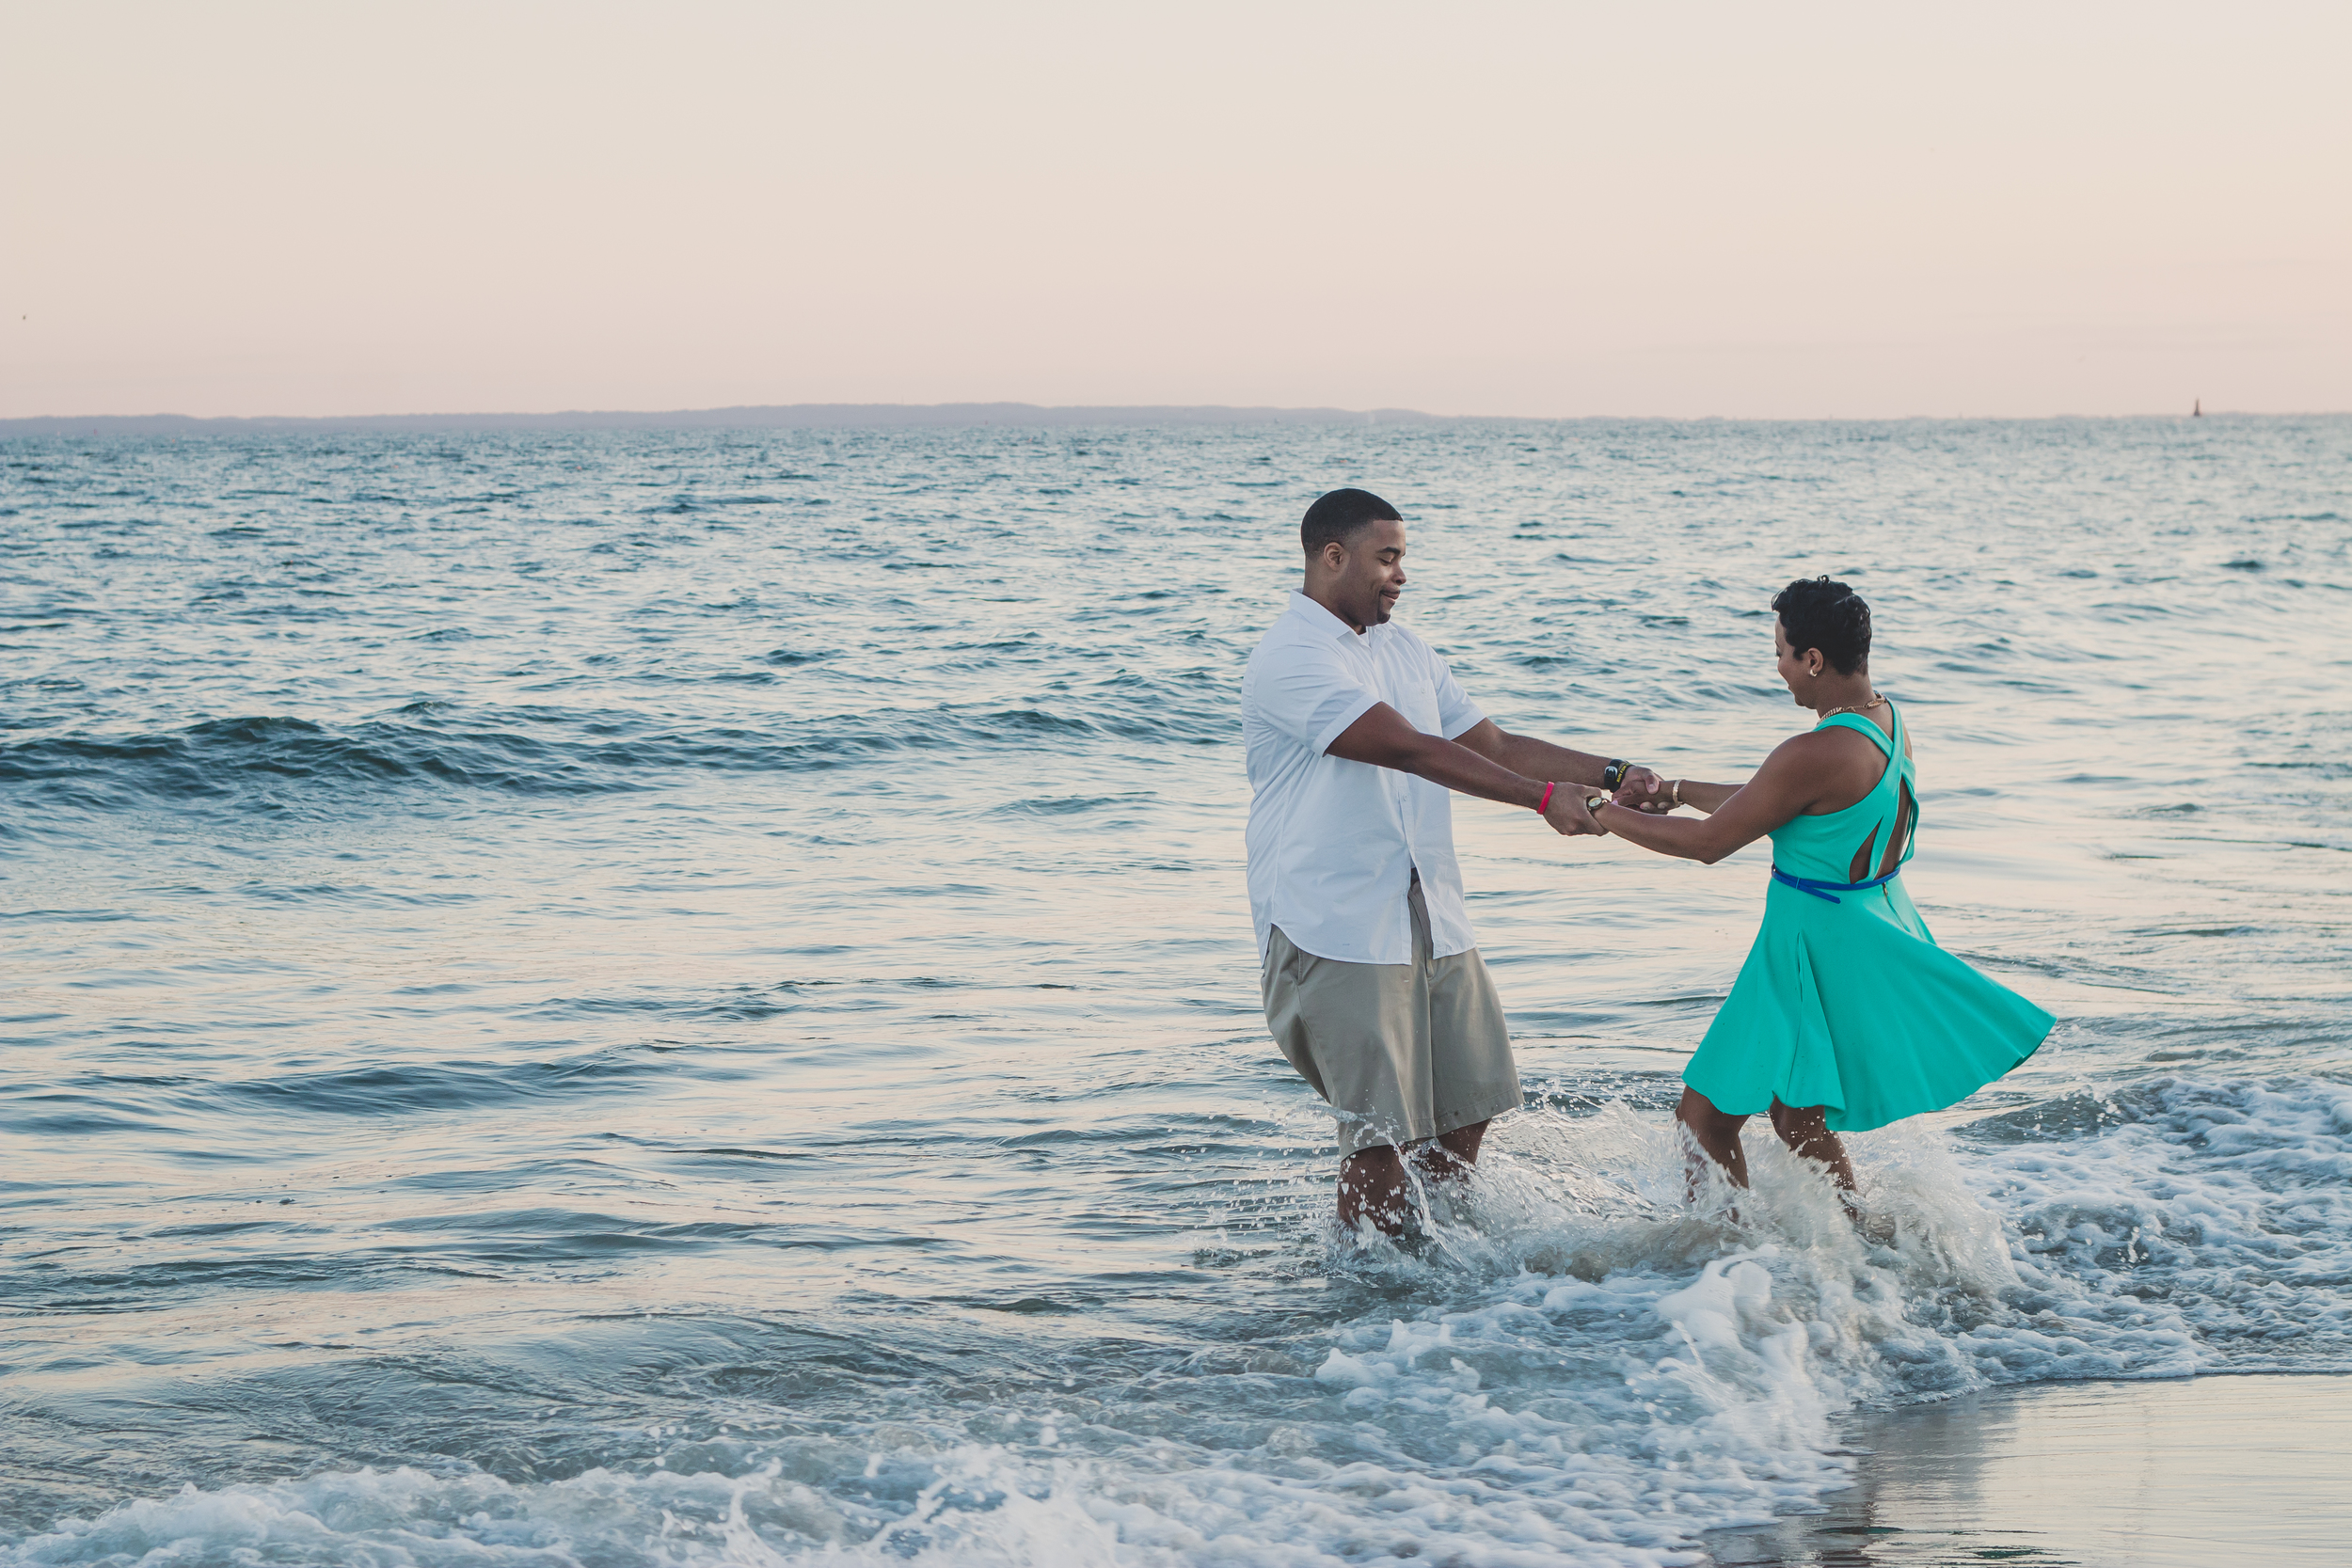 dancing around in the water beach nyc photography